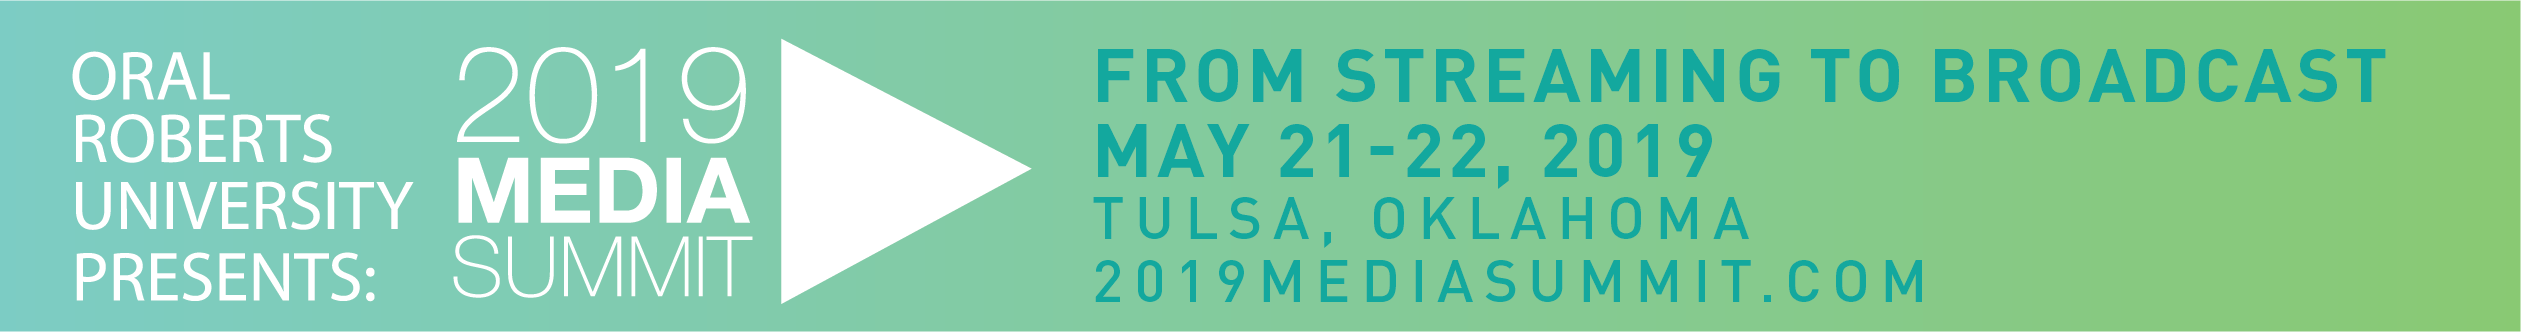 Oral Roberts University Presents: 2019 Media Summit May 21-22, 2019 Tulsa OK - www.2019MediaSummit.com